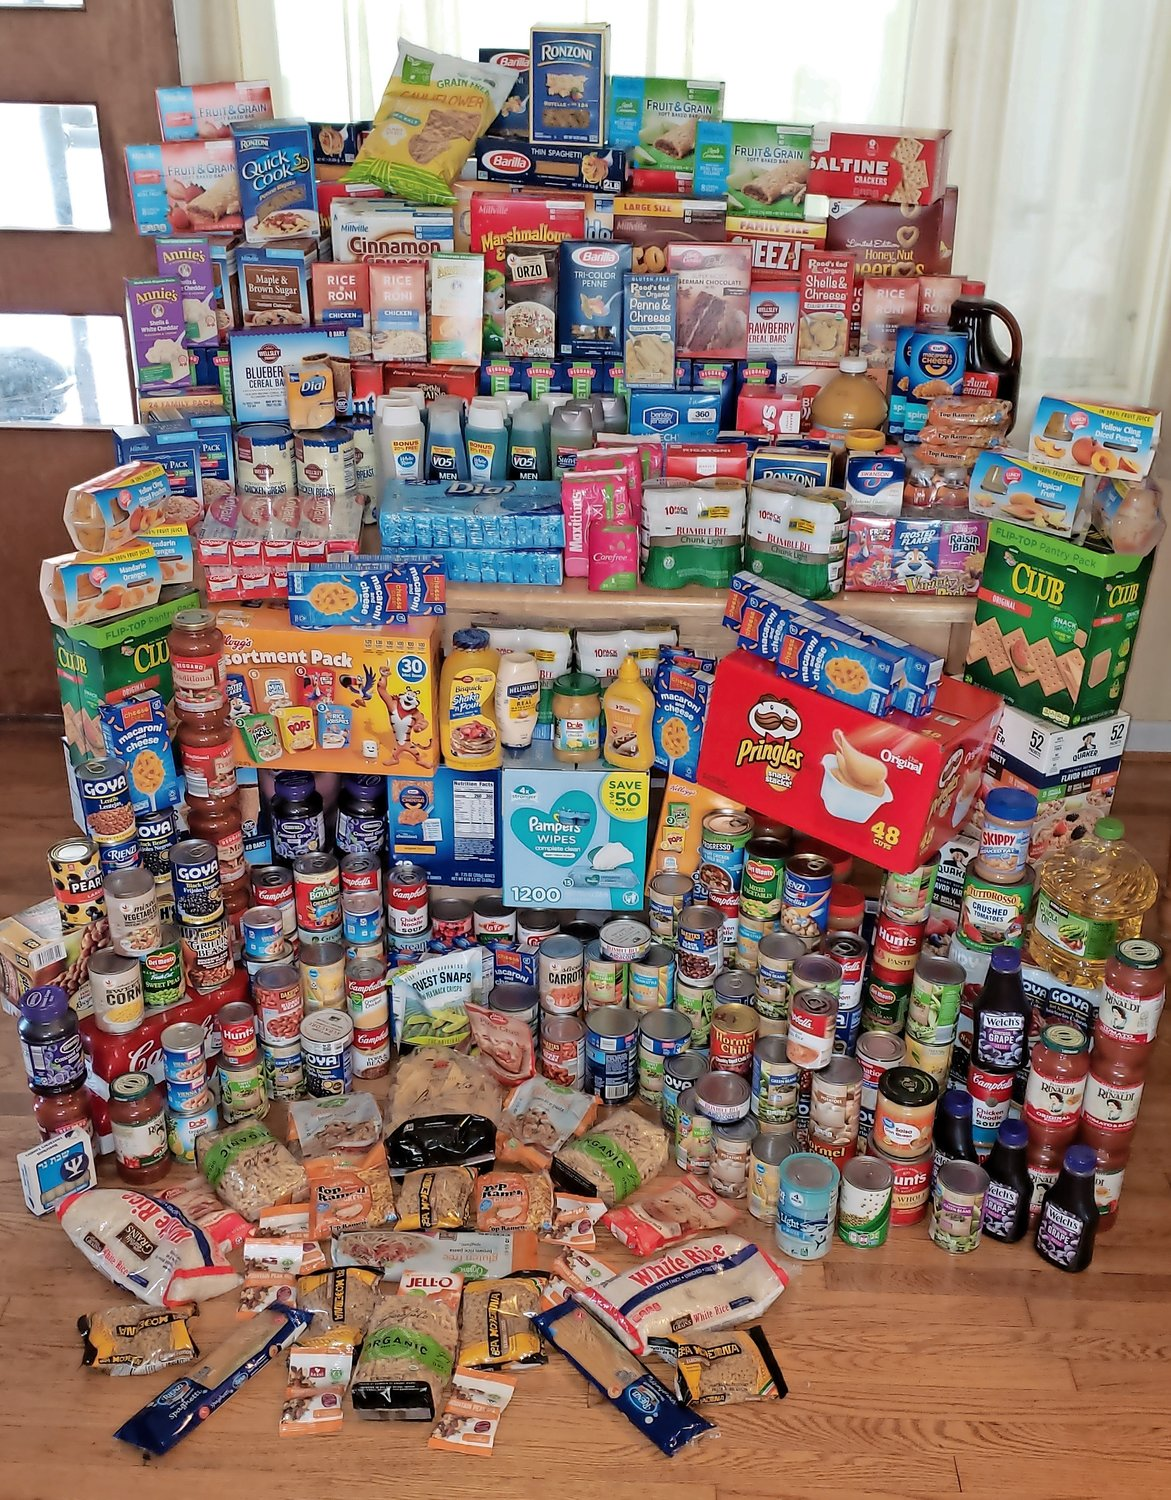 Assistant Scoutmaster Mary Canzoneri said she received more than 100 nonperishable food items at her home for the food drive.